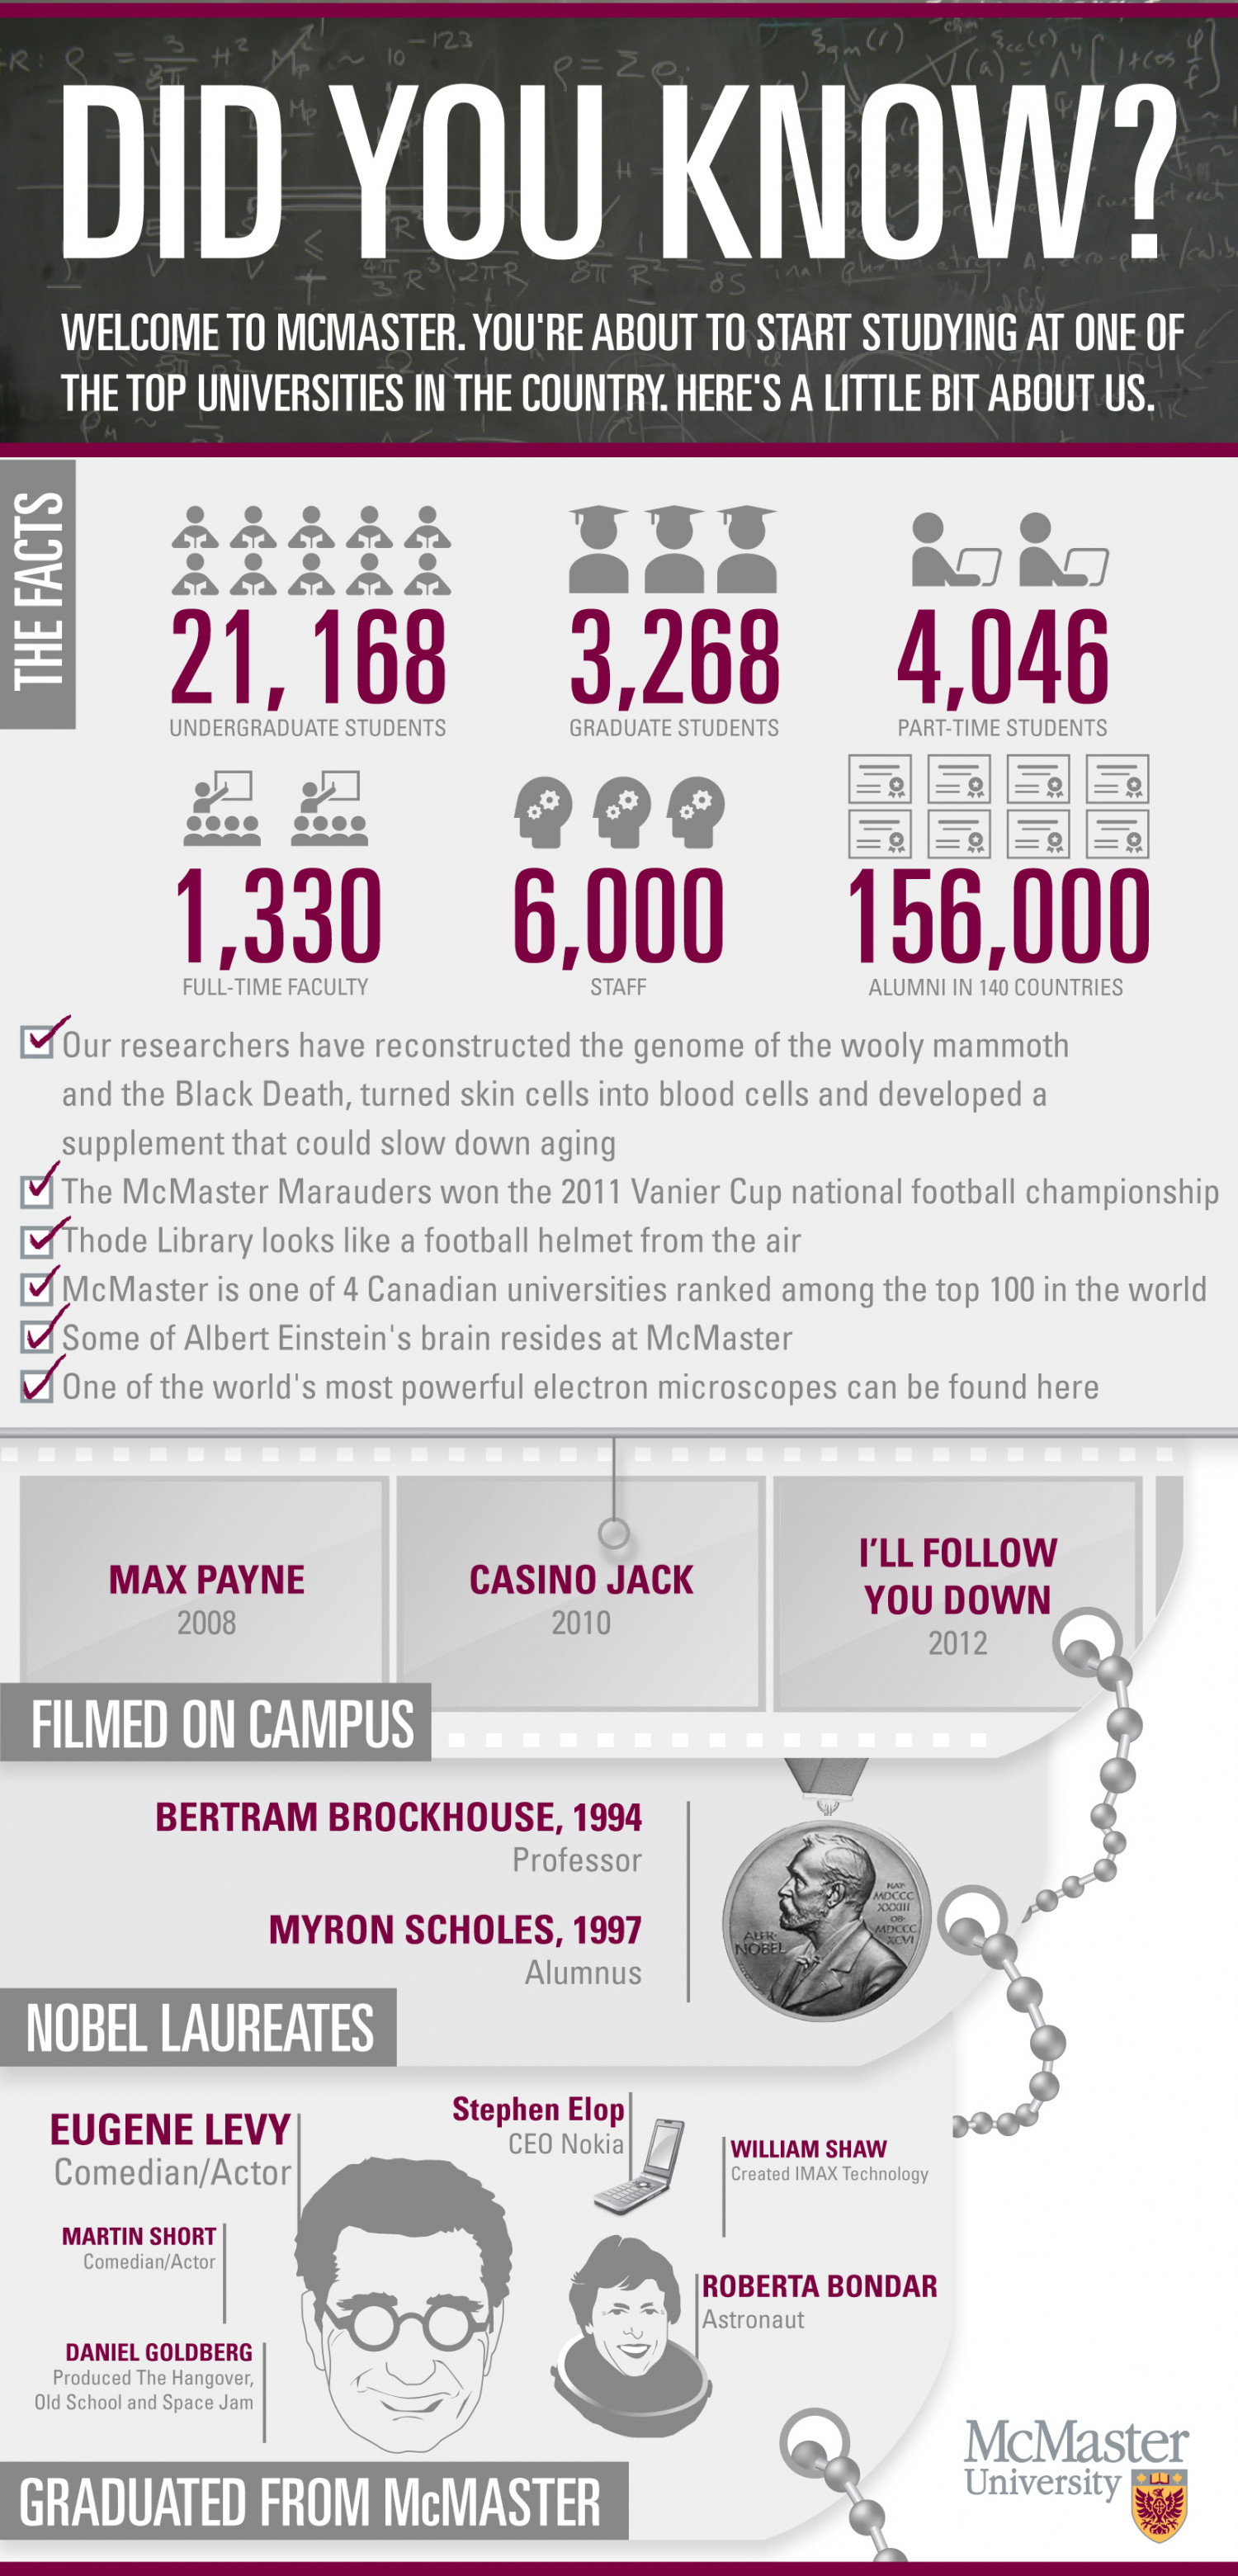 McMaster University - Did you know?  Infographic